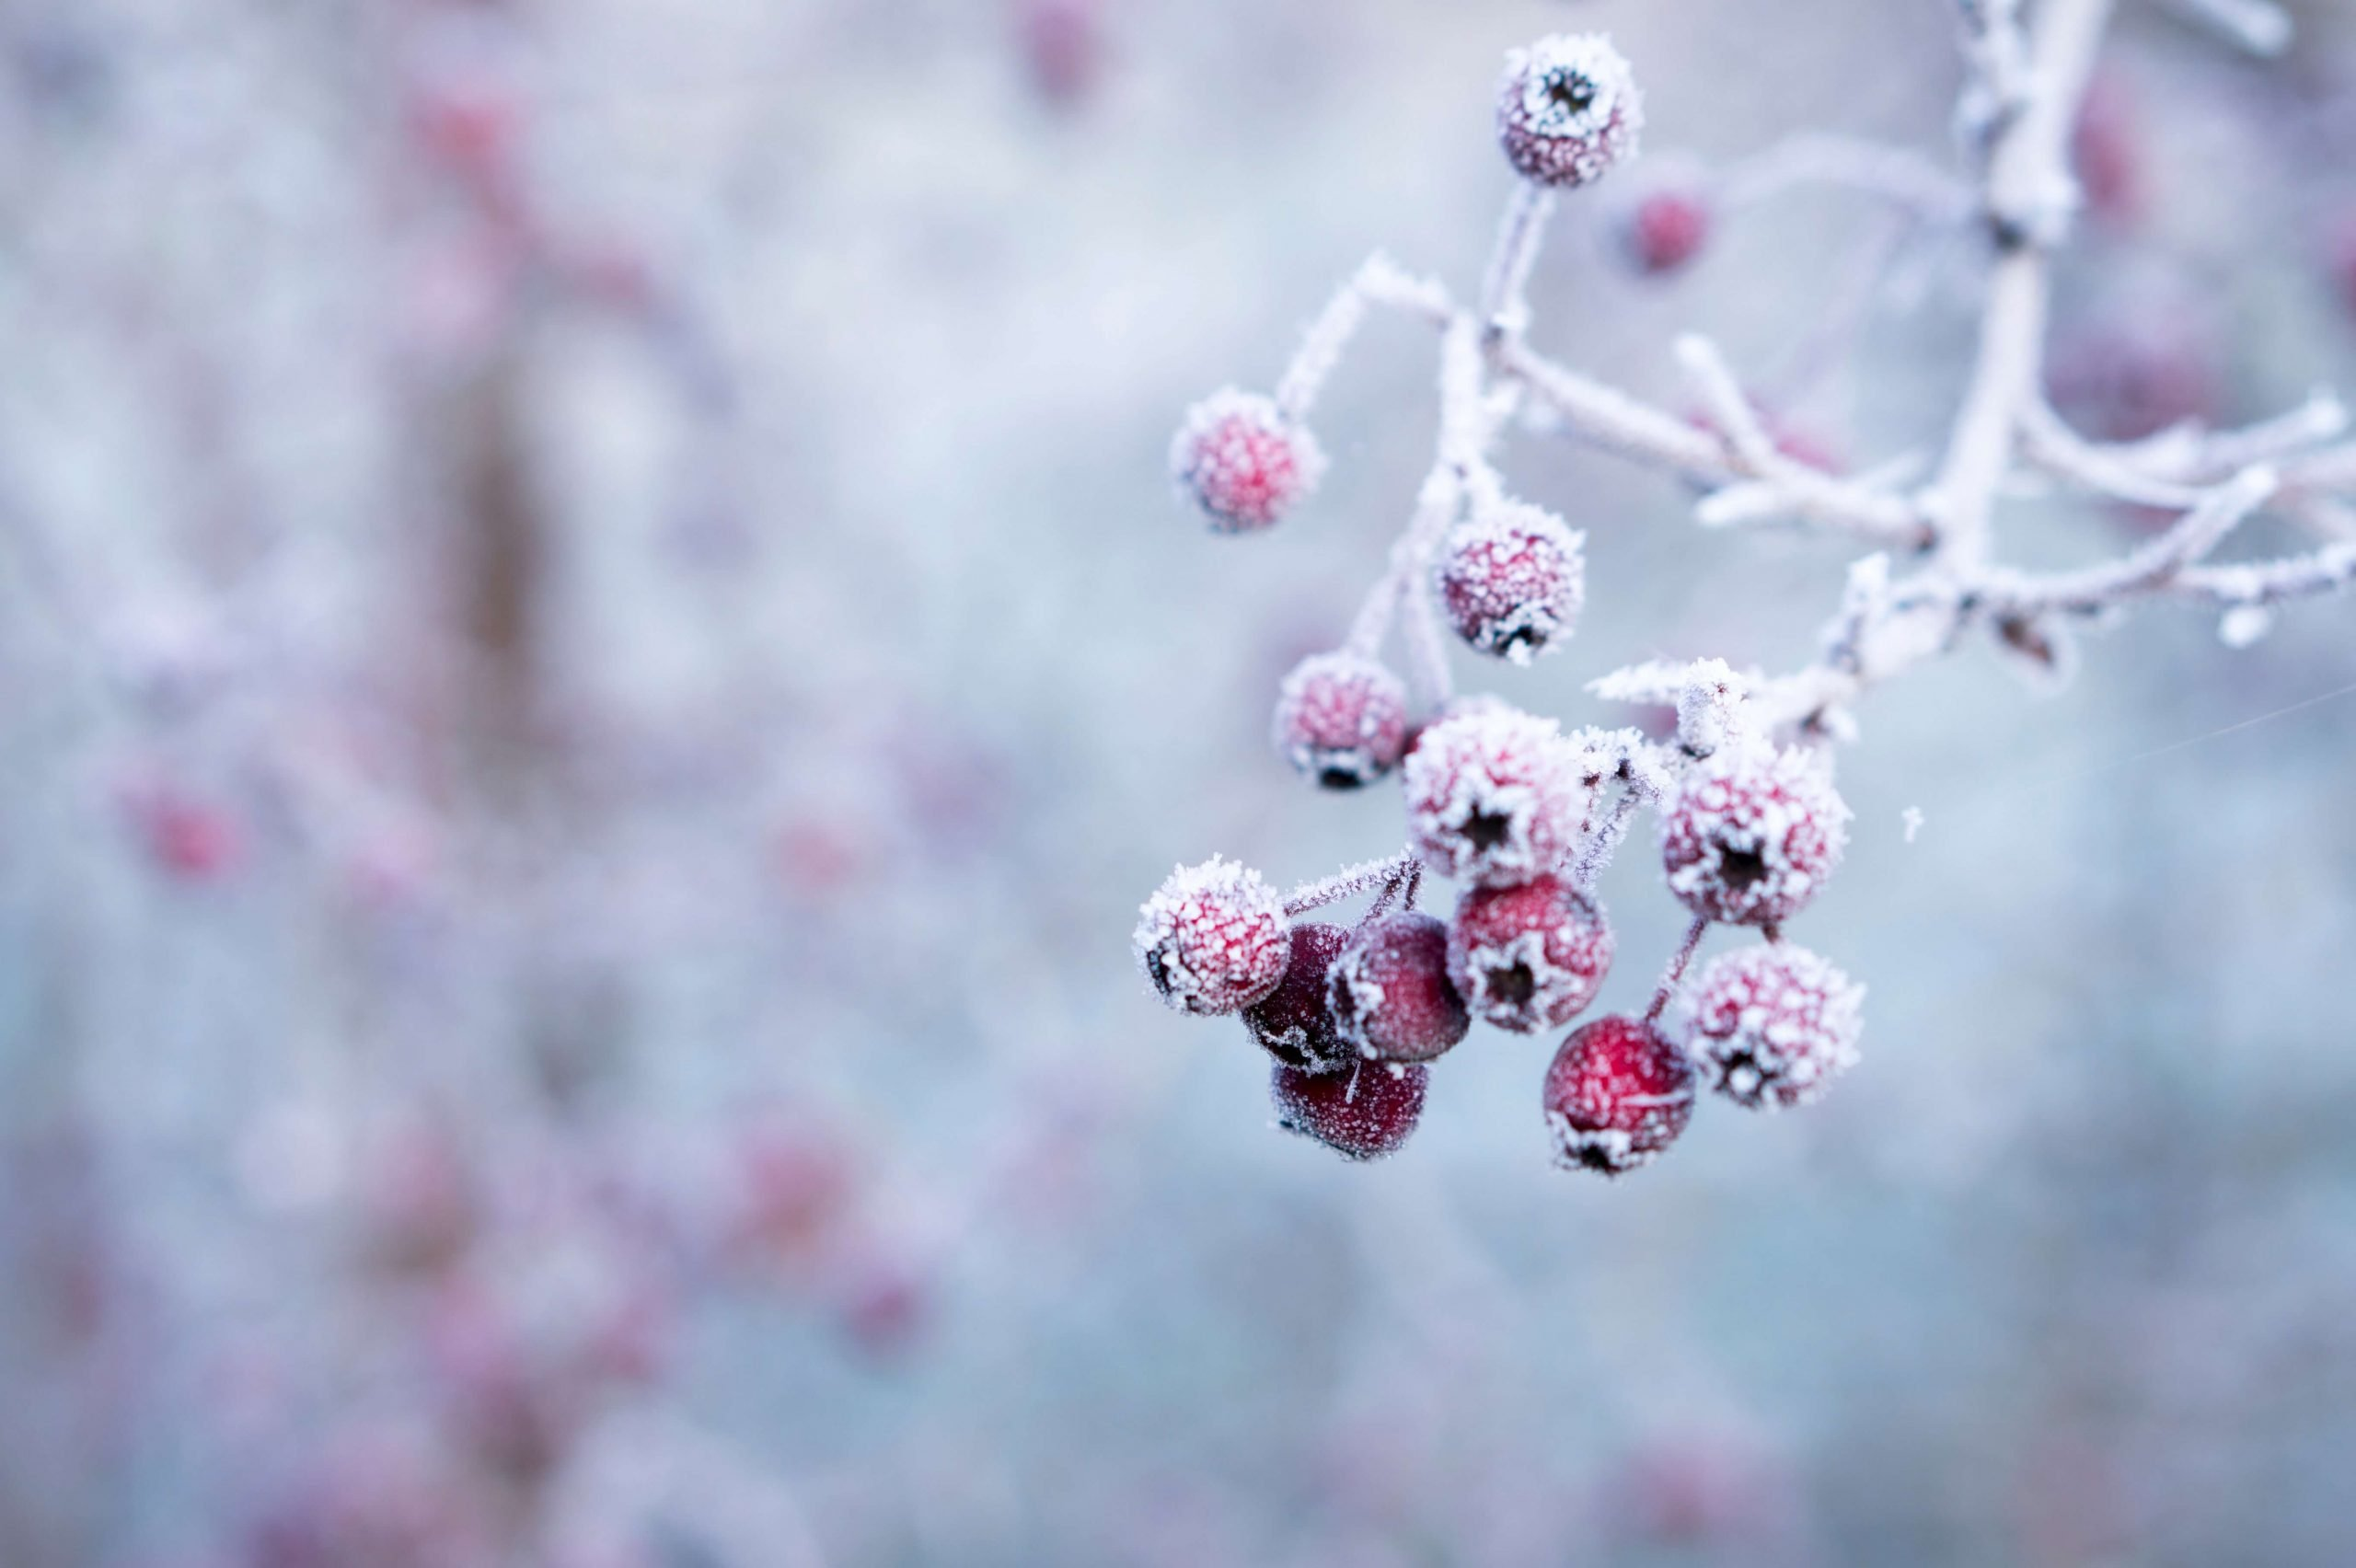 cold berries representing winter months